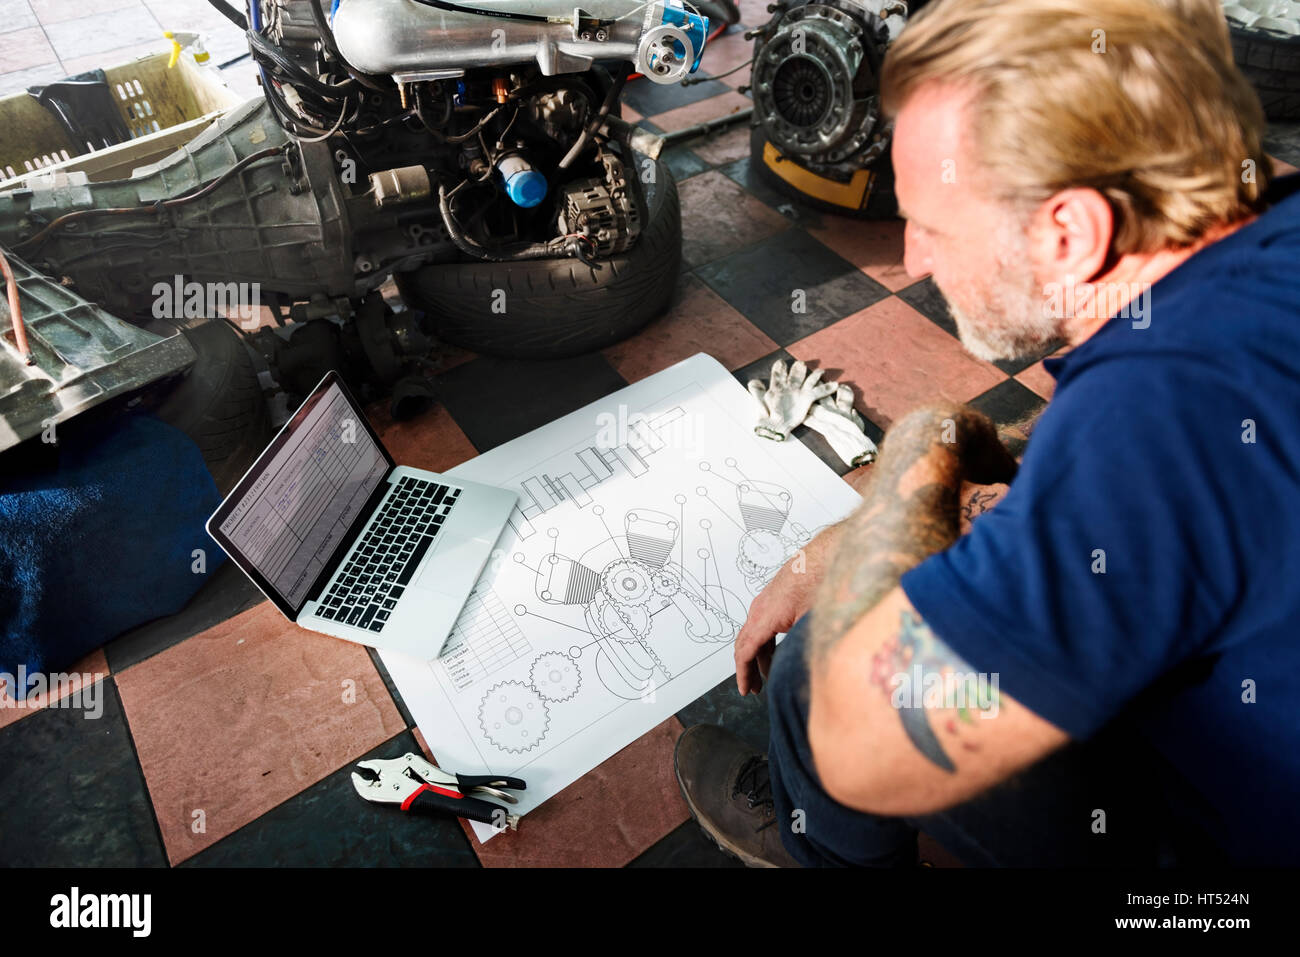 Construction Master Plan Draft Blueprint Male Laptop Concept - Stock Image